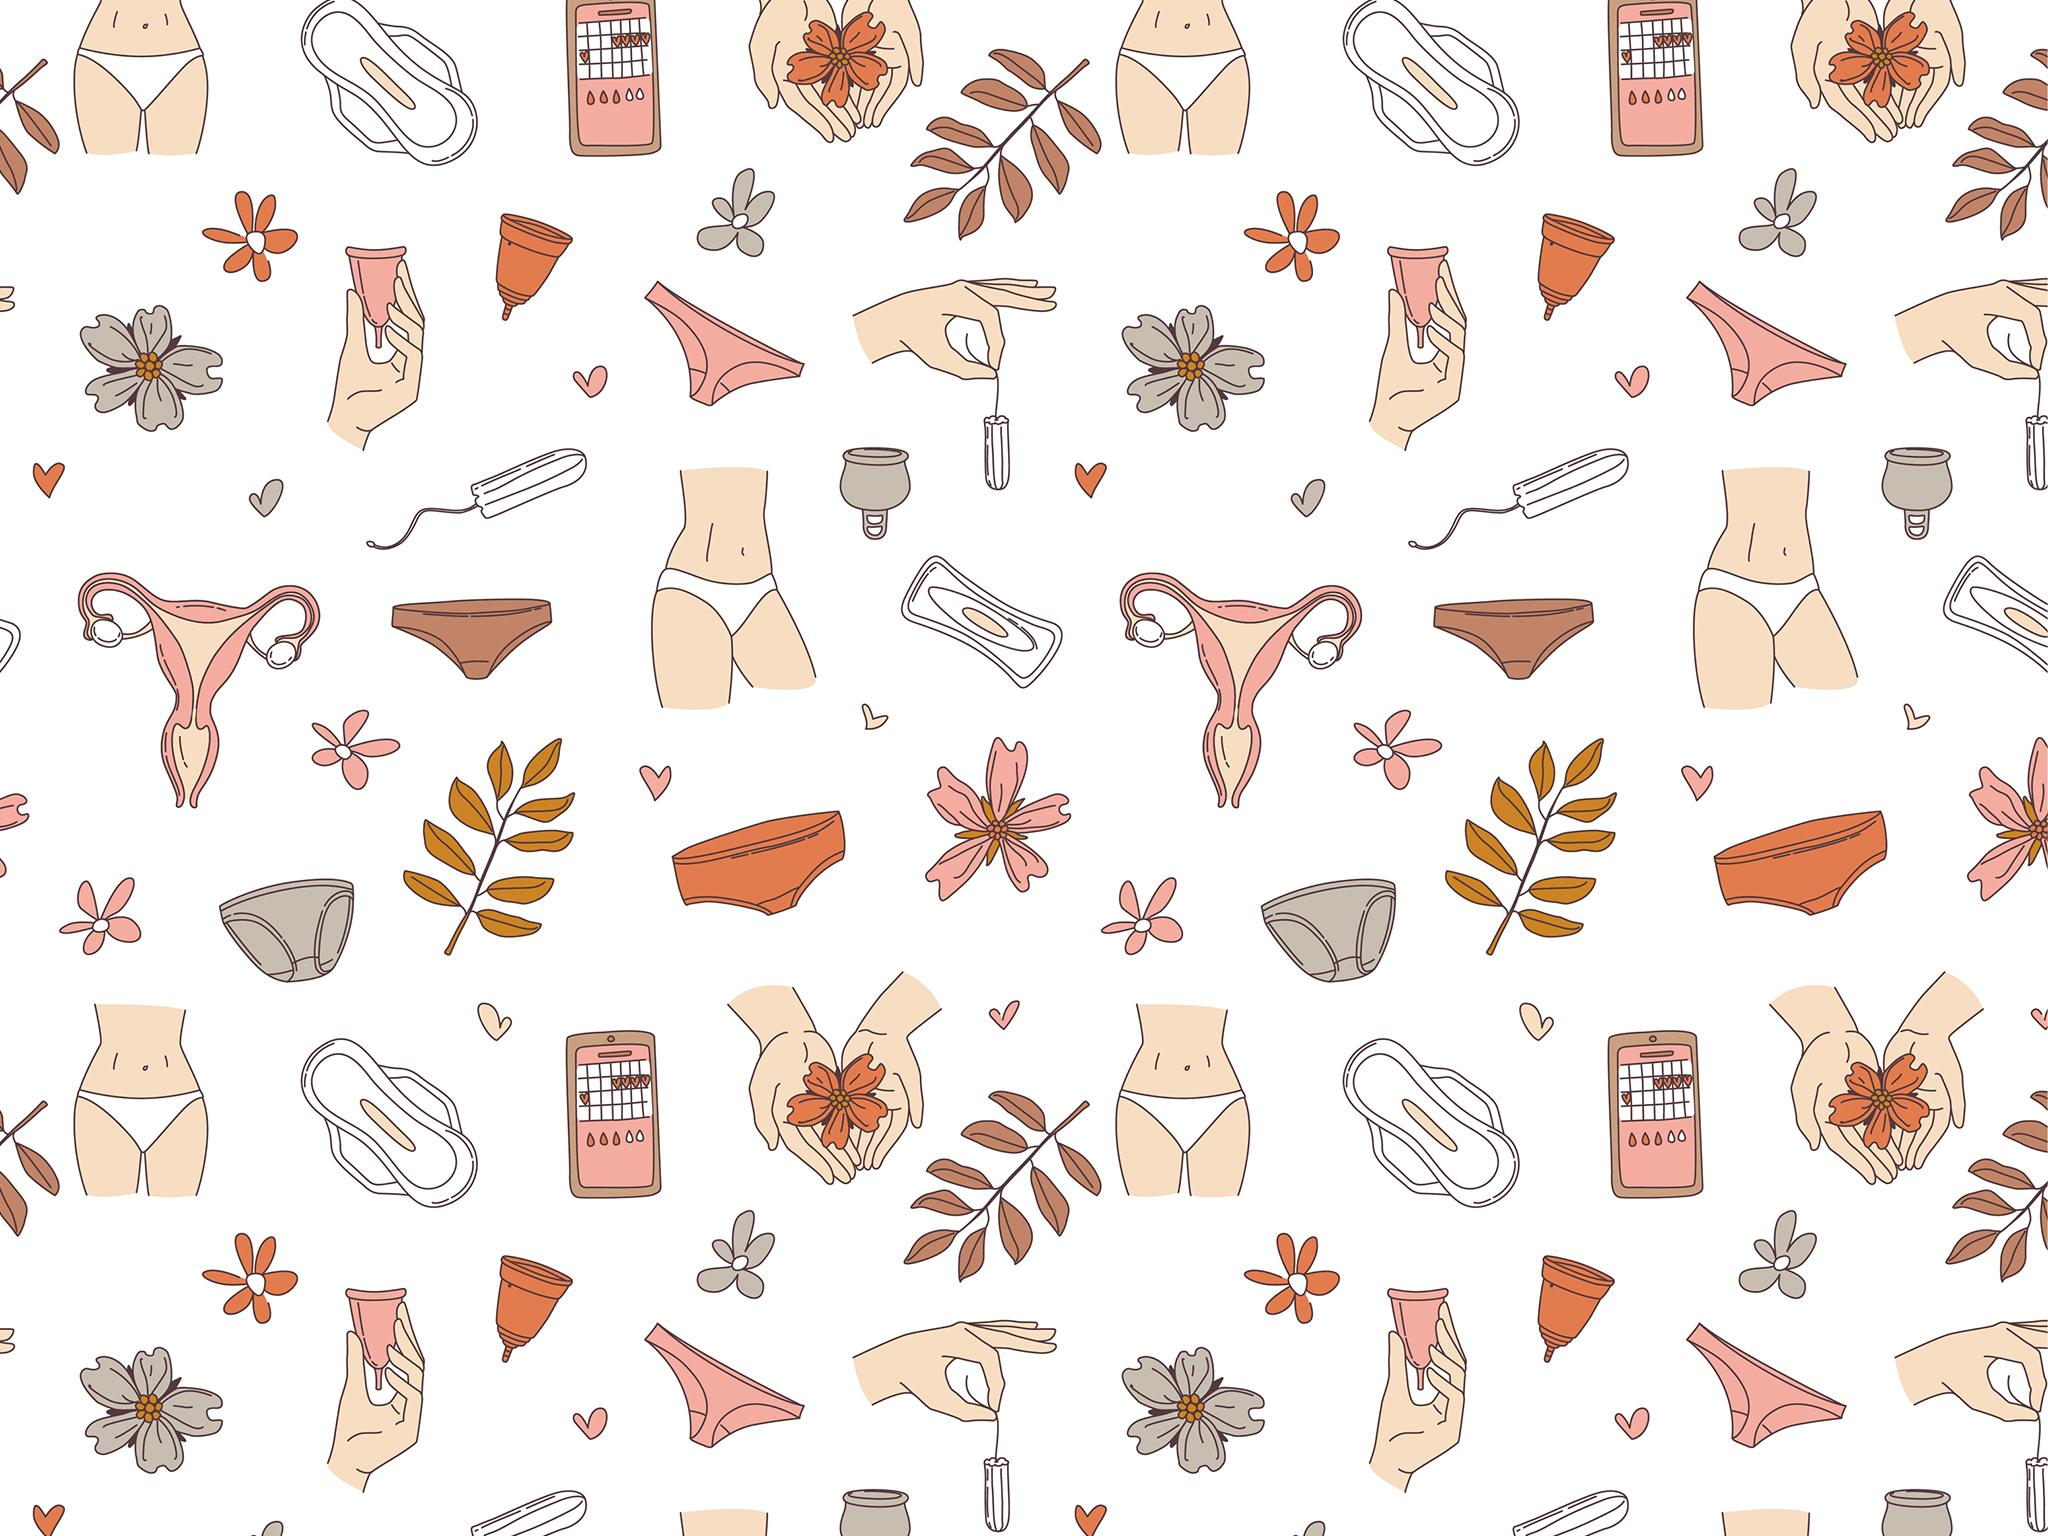 Menstrual Hygiene Day: From tampons to CBD oil, everything you require to get through your period